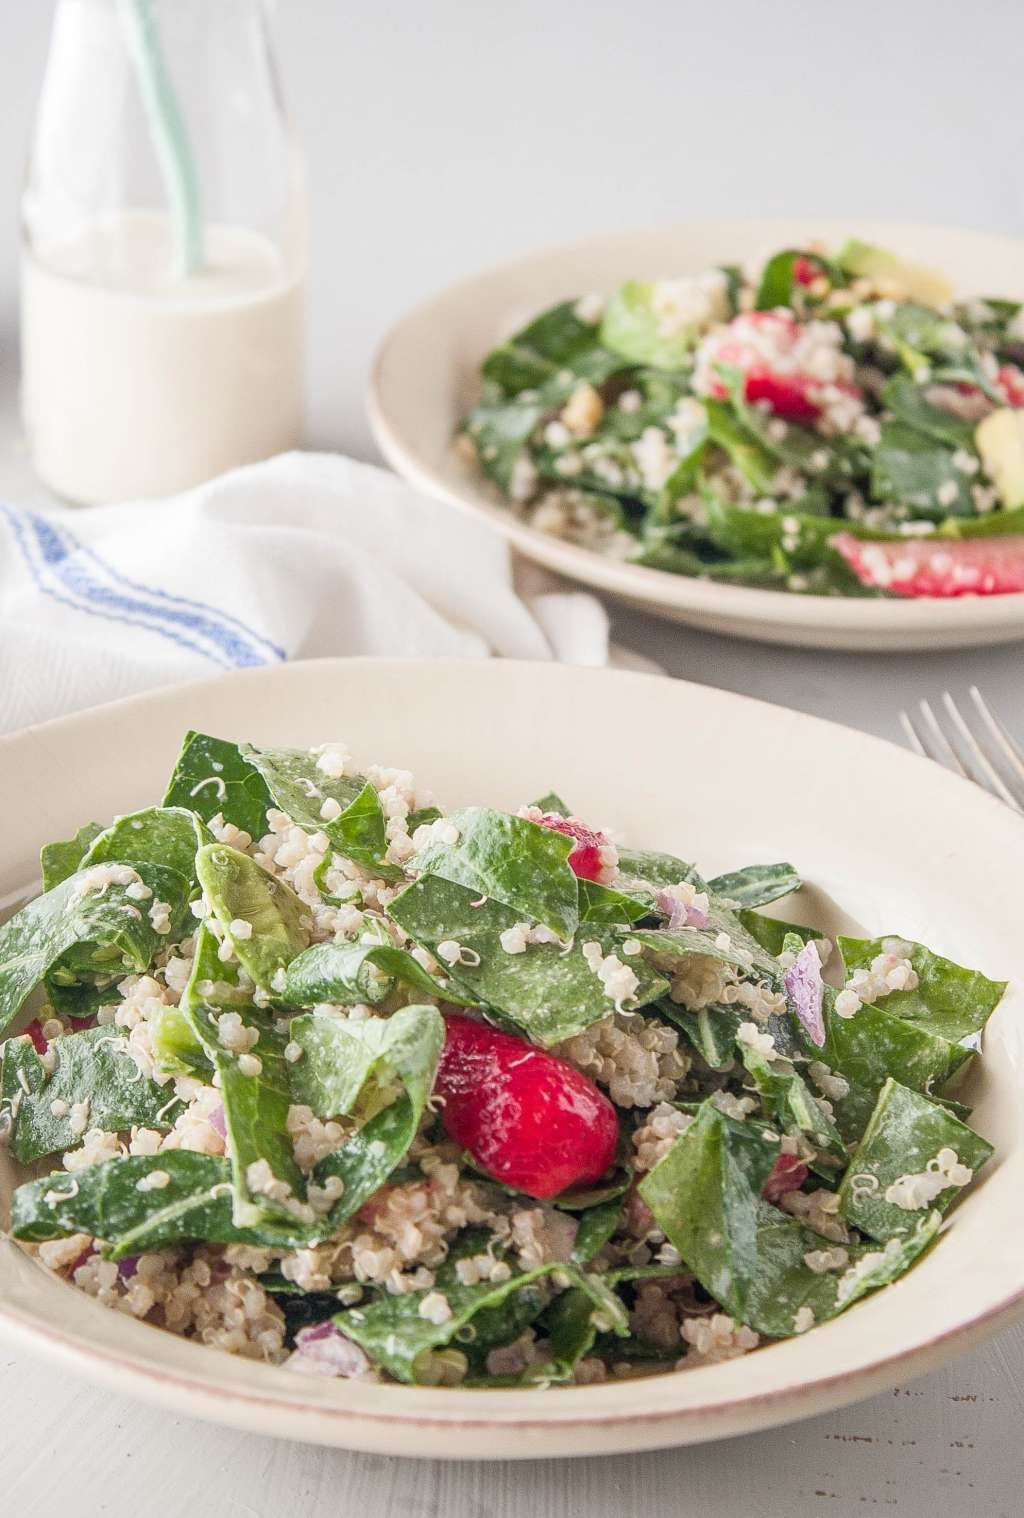 Recipe: Collard Green Salad with Strawberries & Tahini Dressing